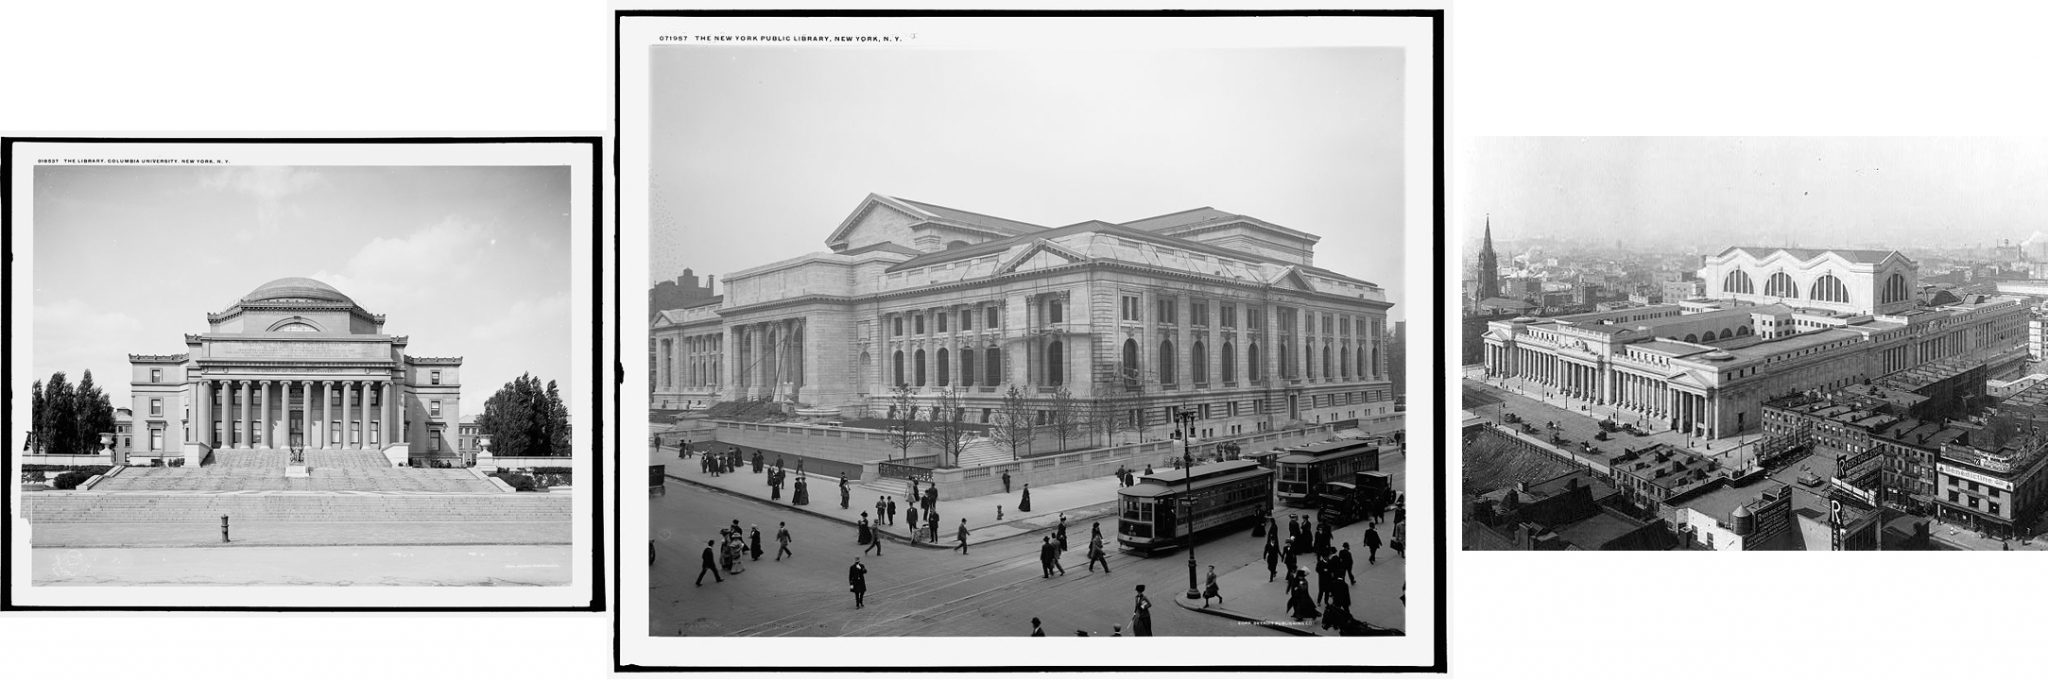 City Beautiful architecture in New York City: Low Library at Columbia University, New York Public Library (Fifth/ 42nd), and Pennsylvania Station.